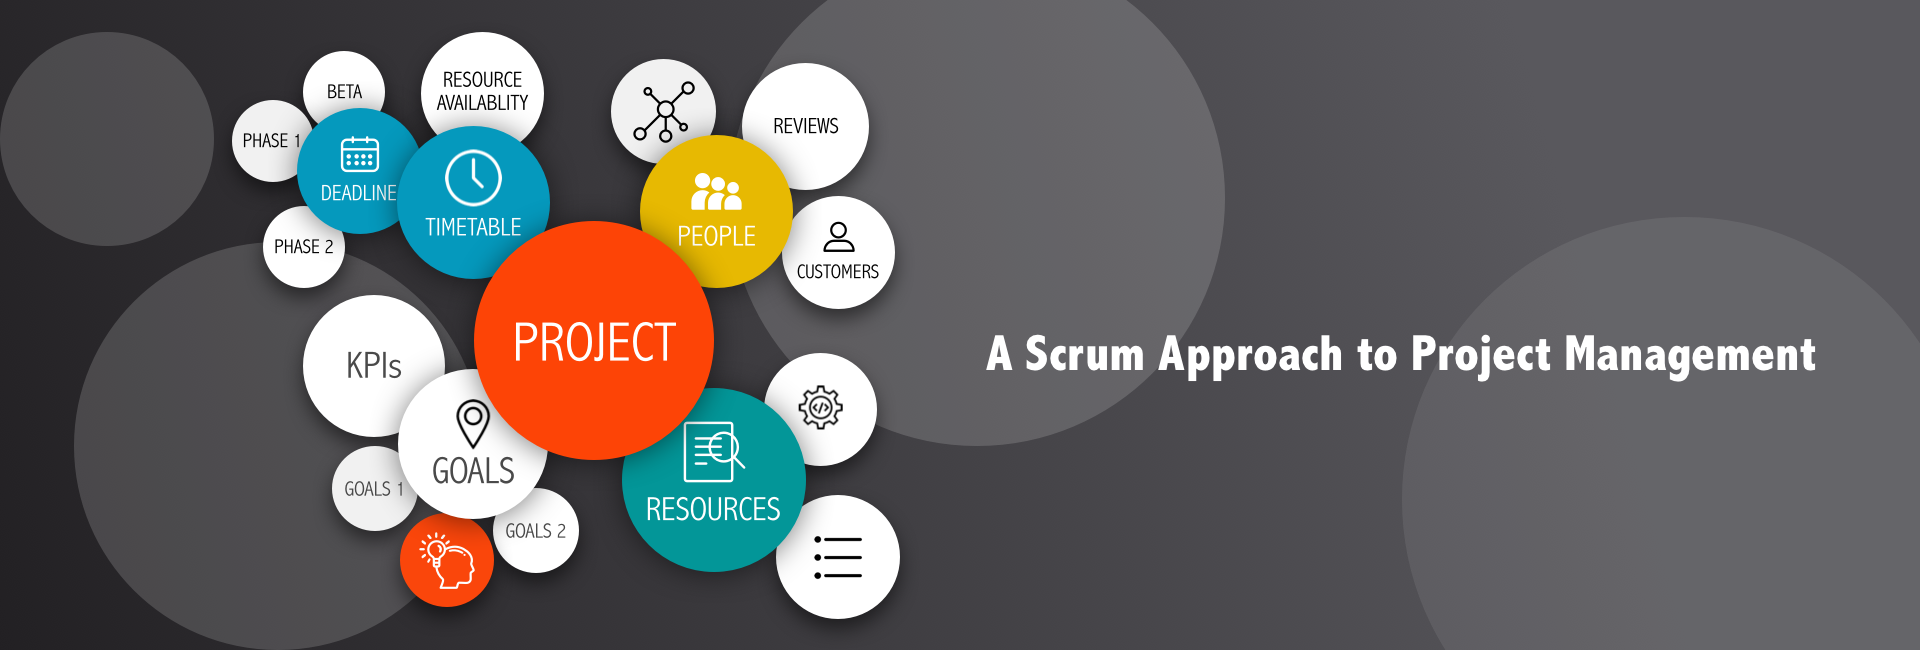 A Scrum Approach to Project Management